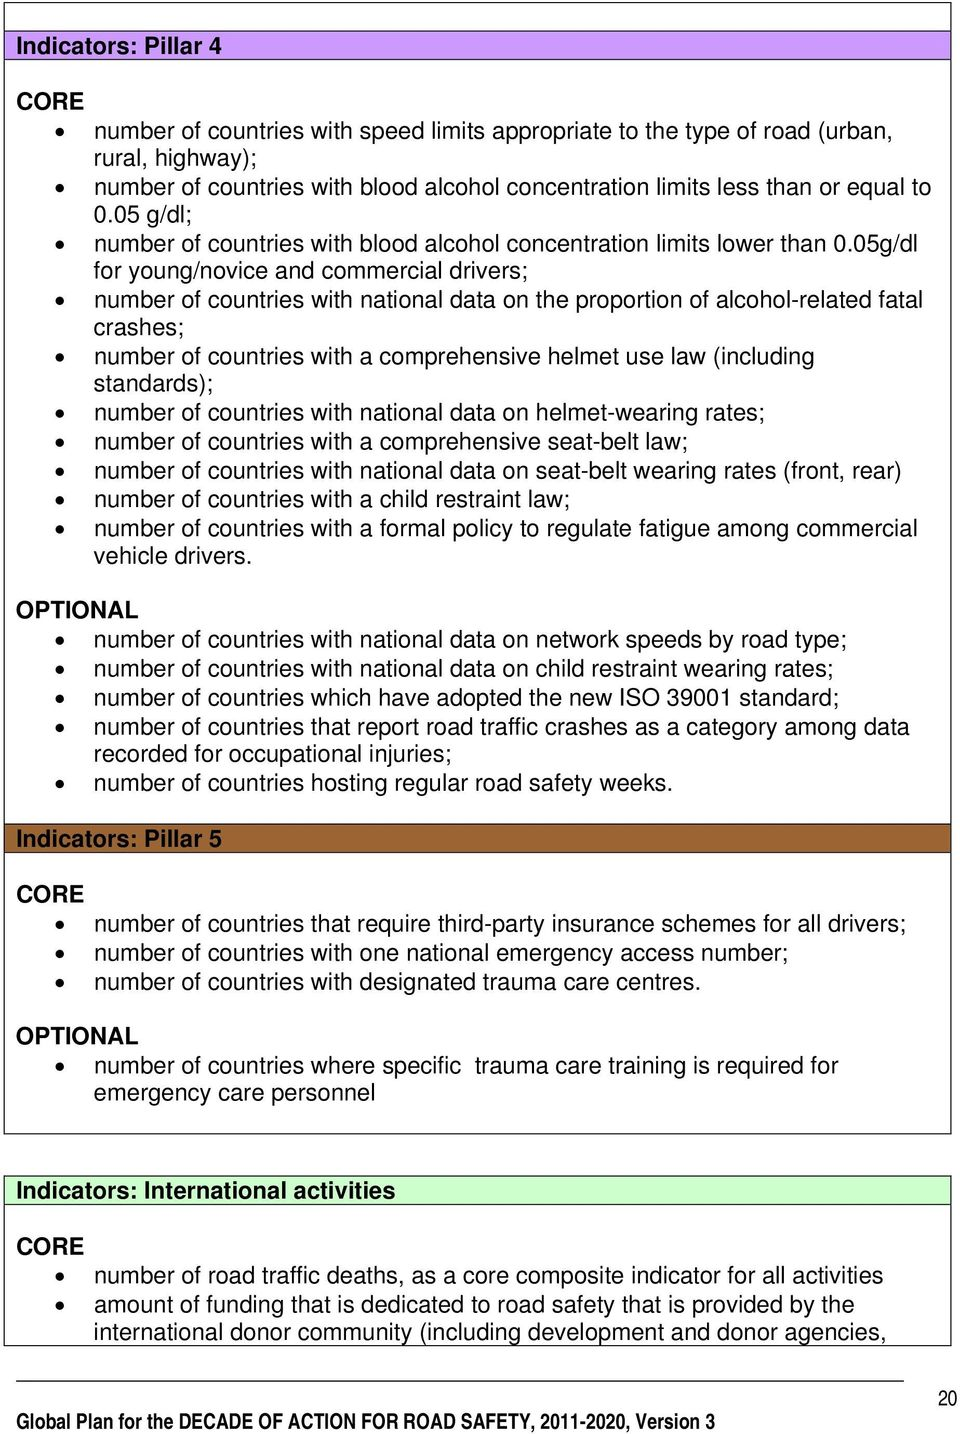 05g/dl for young/novice and commercial drivers; number of countries with national data on the proportion of alcohol-related fatal crashes; number of countries with a comprehensive helmet use law